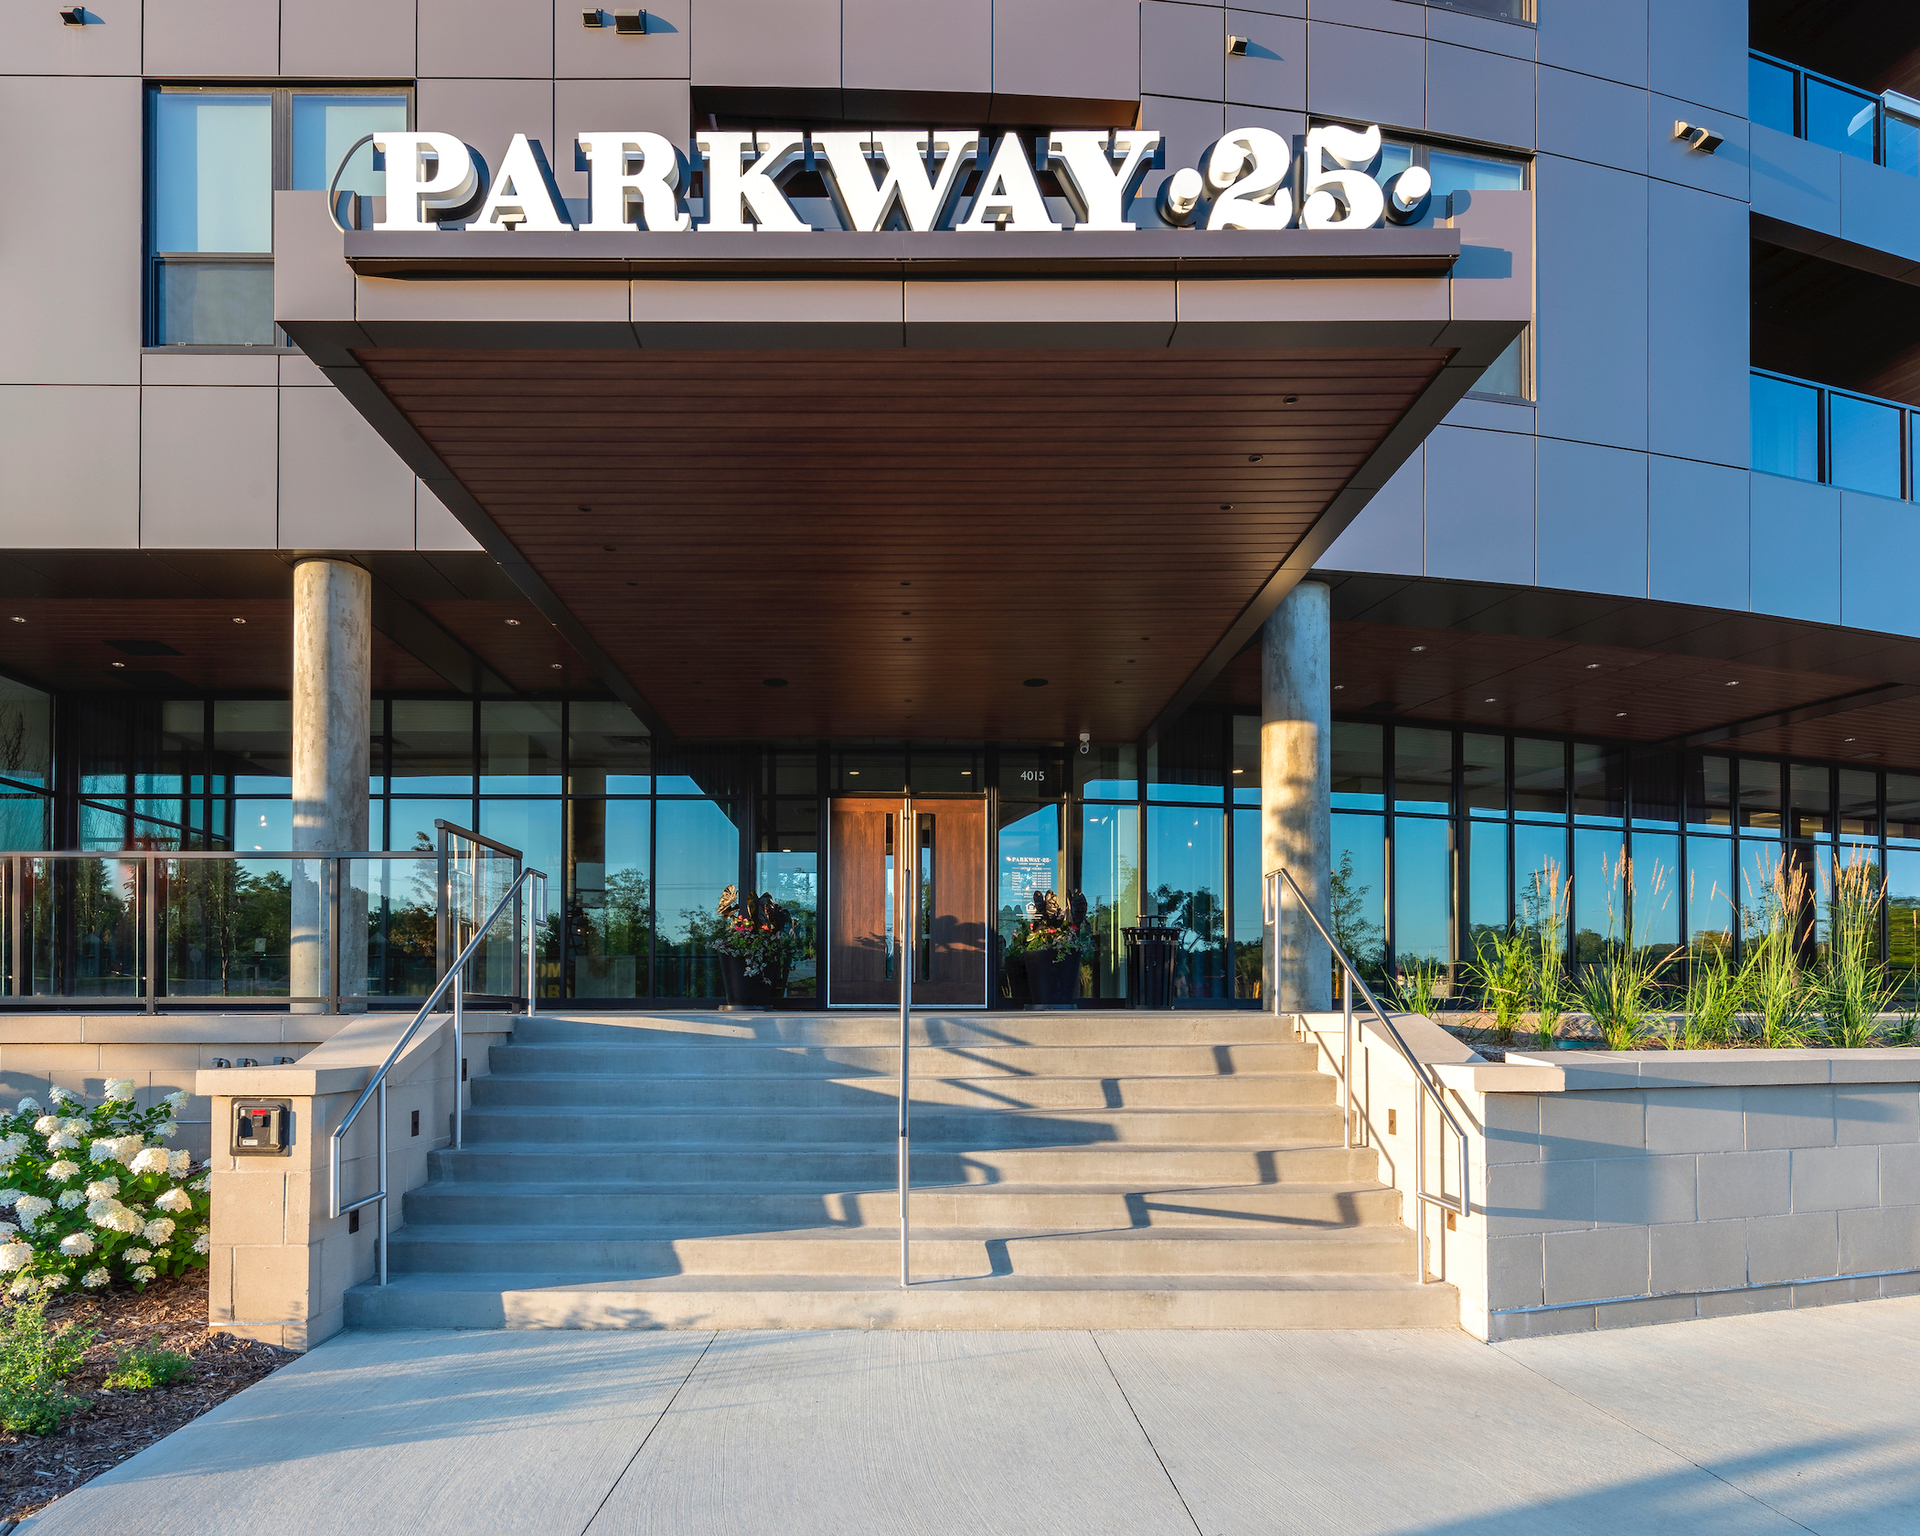 The large entrance canopy shelters guests and tenants by also adding a bold exterior design element to the apartment building at Parkway 25 in St. Louis Park, MN.